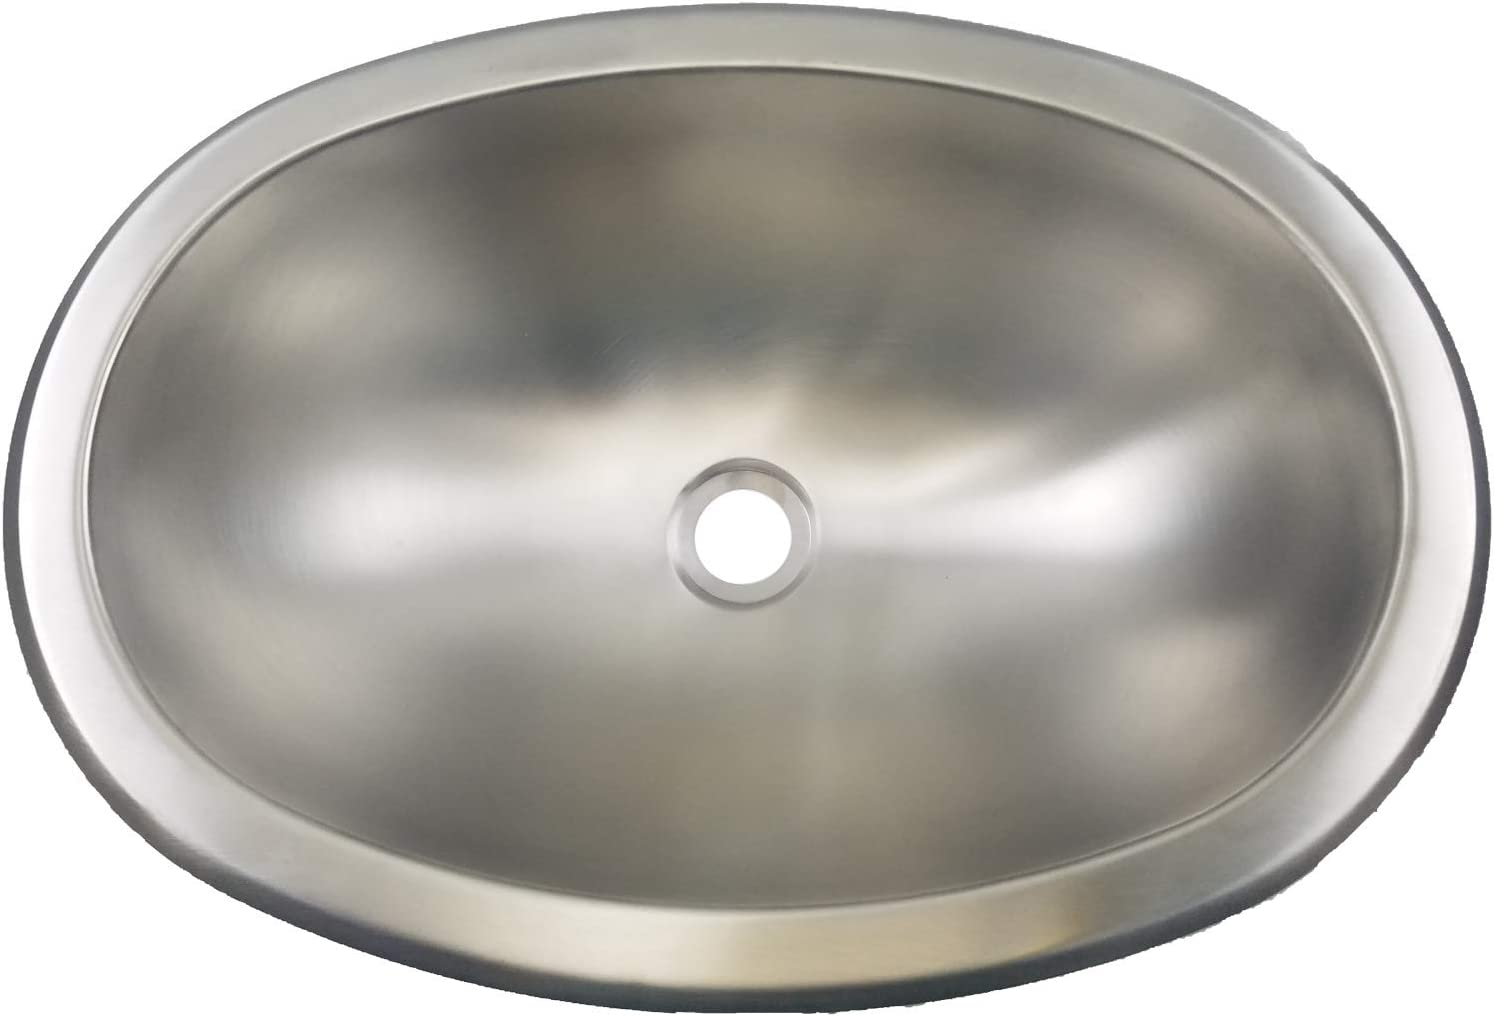 Class A Genuine Free Shipping Customs 300 Series Stainless Steel Sink Tucson Mall Oval x 13